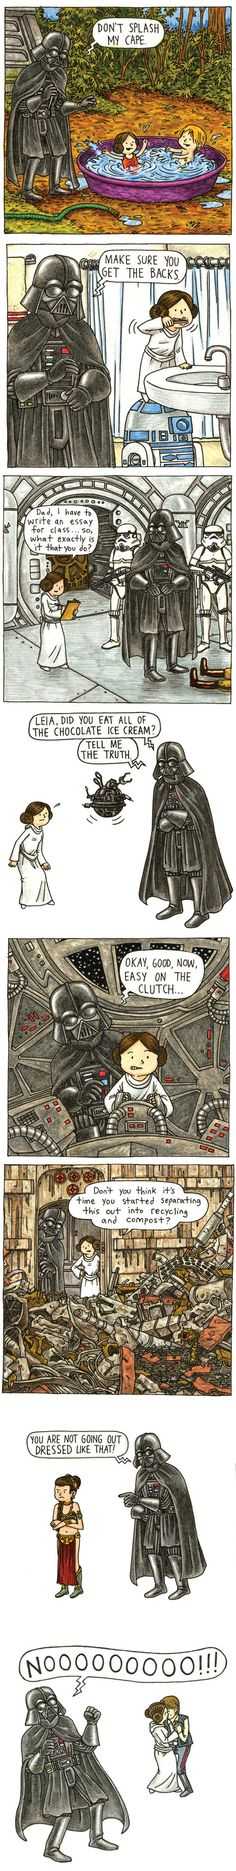 Vader's Little Princess // funny pictures - funny photos - funny images - funny pics - funny quotes - #lol #humor #funnypictures